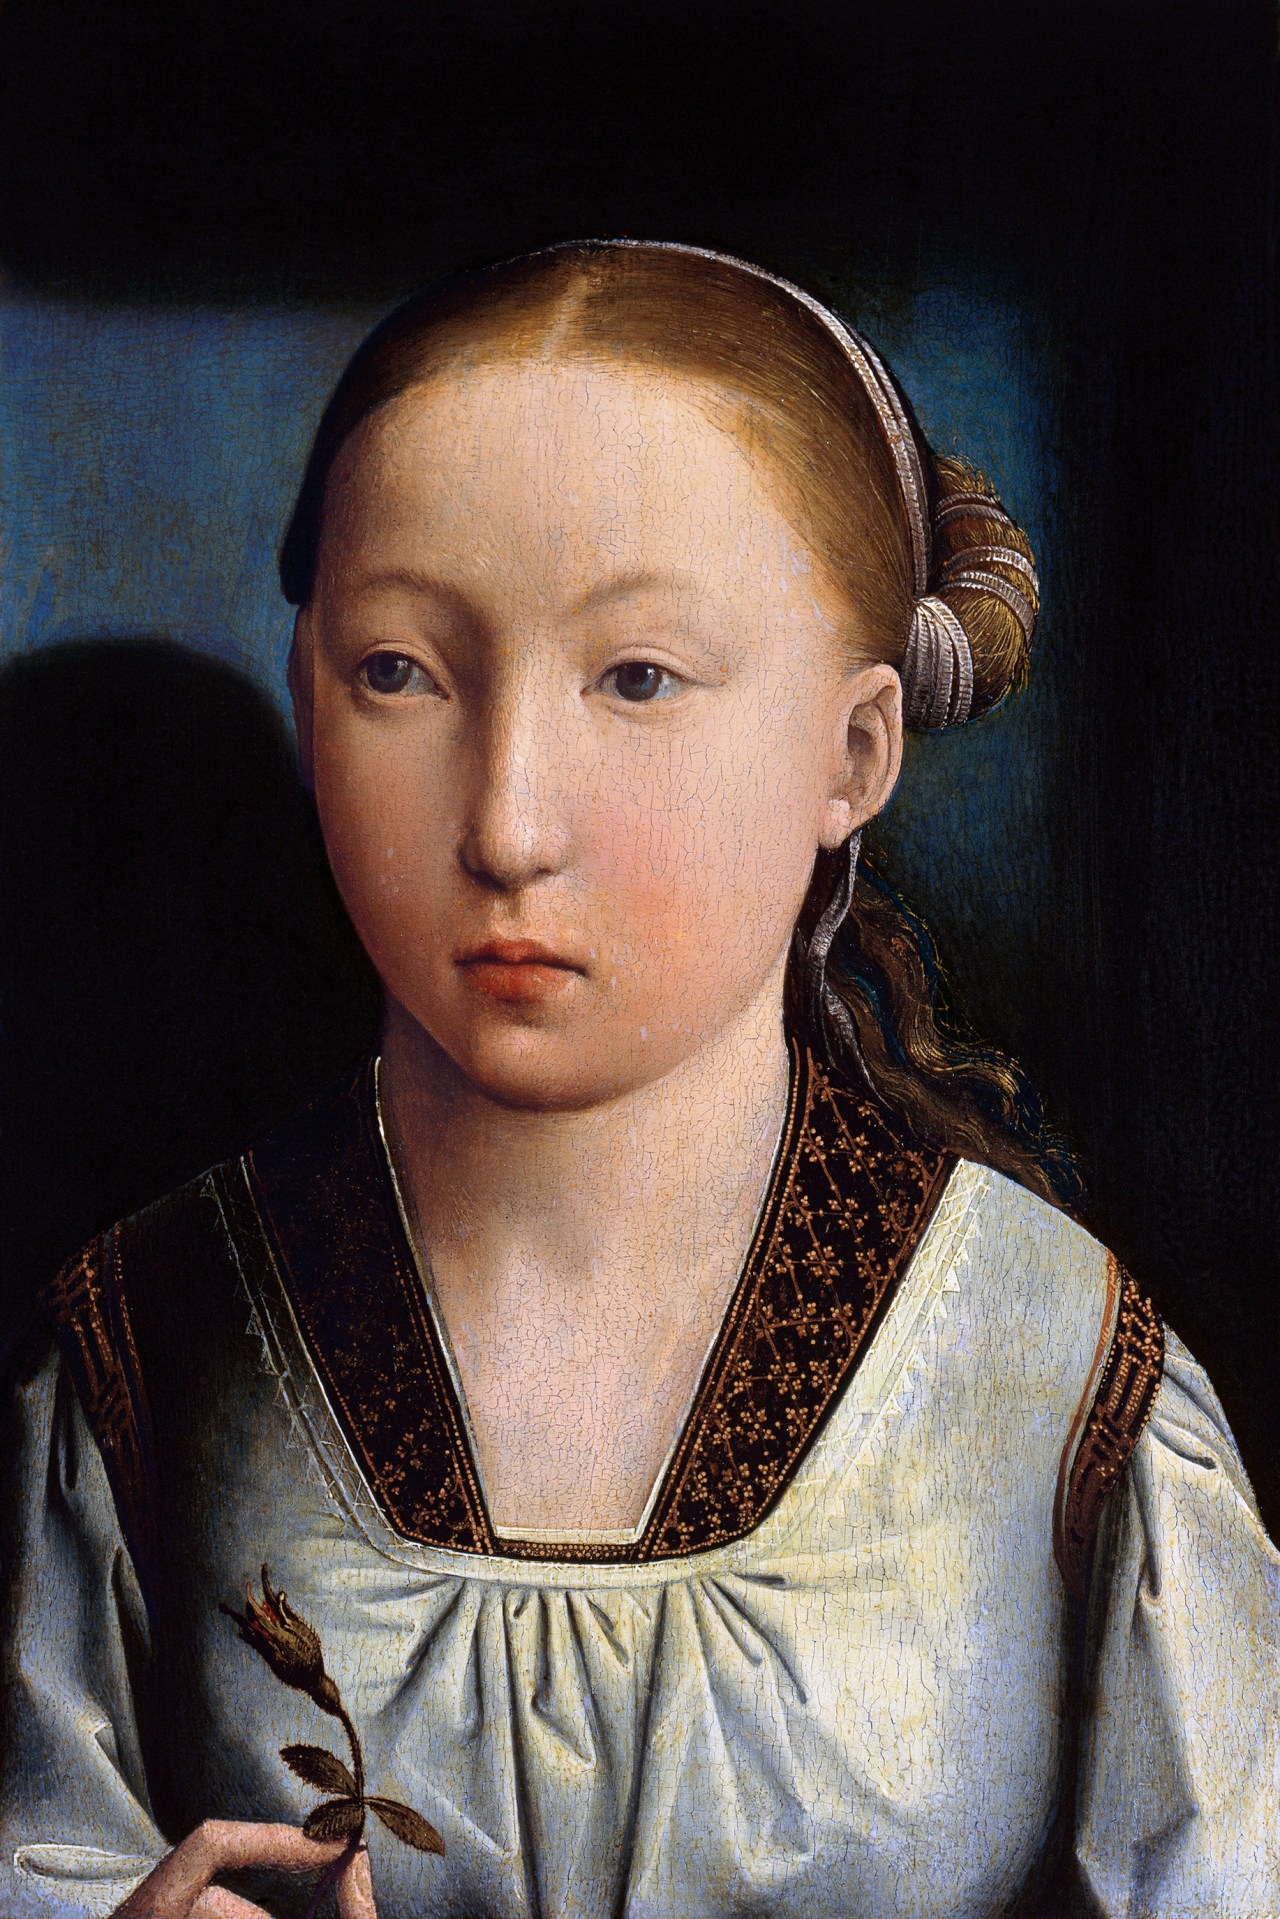 A Young Katherine of Aragon, married at Old St Paul's in 1501